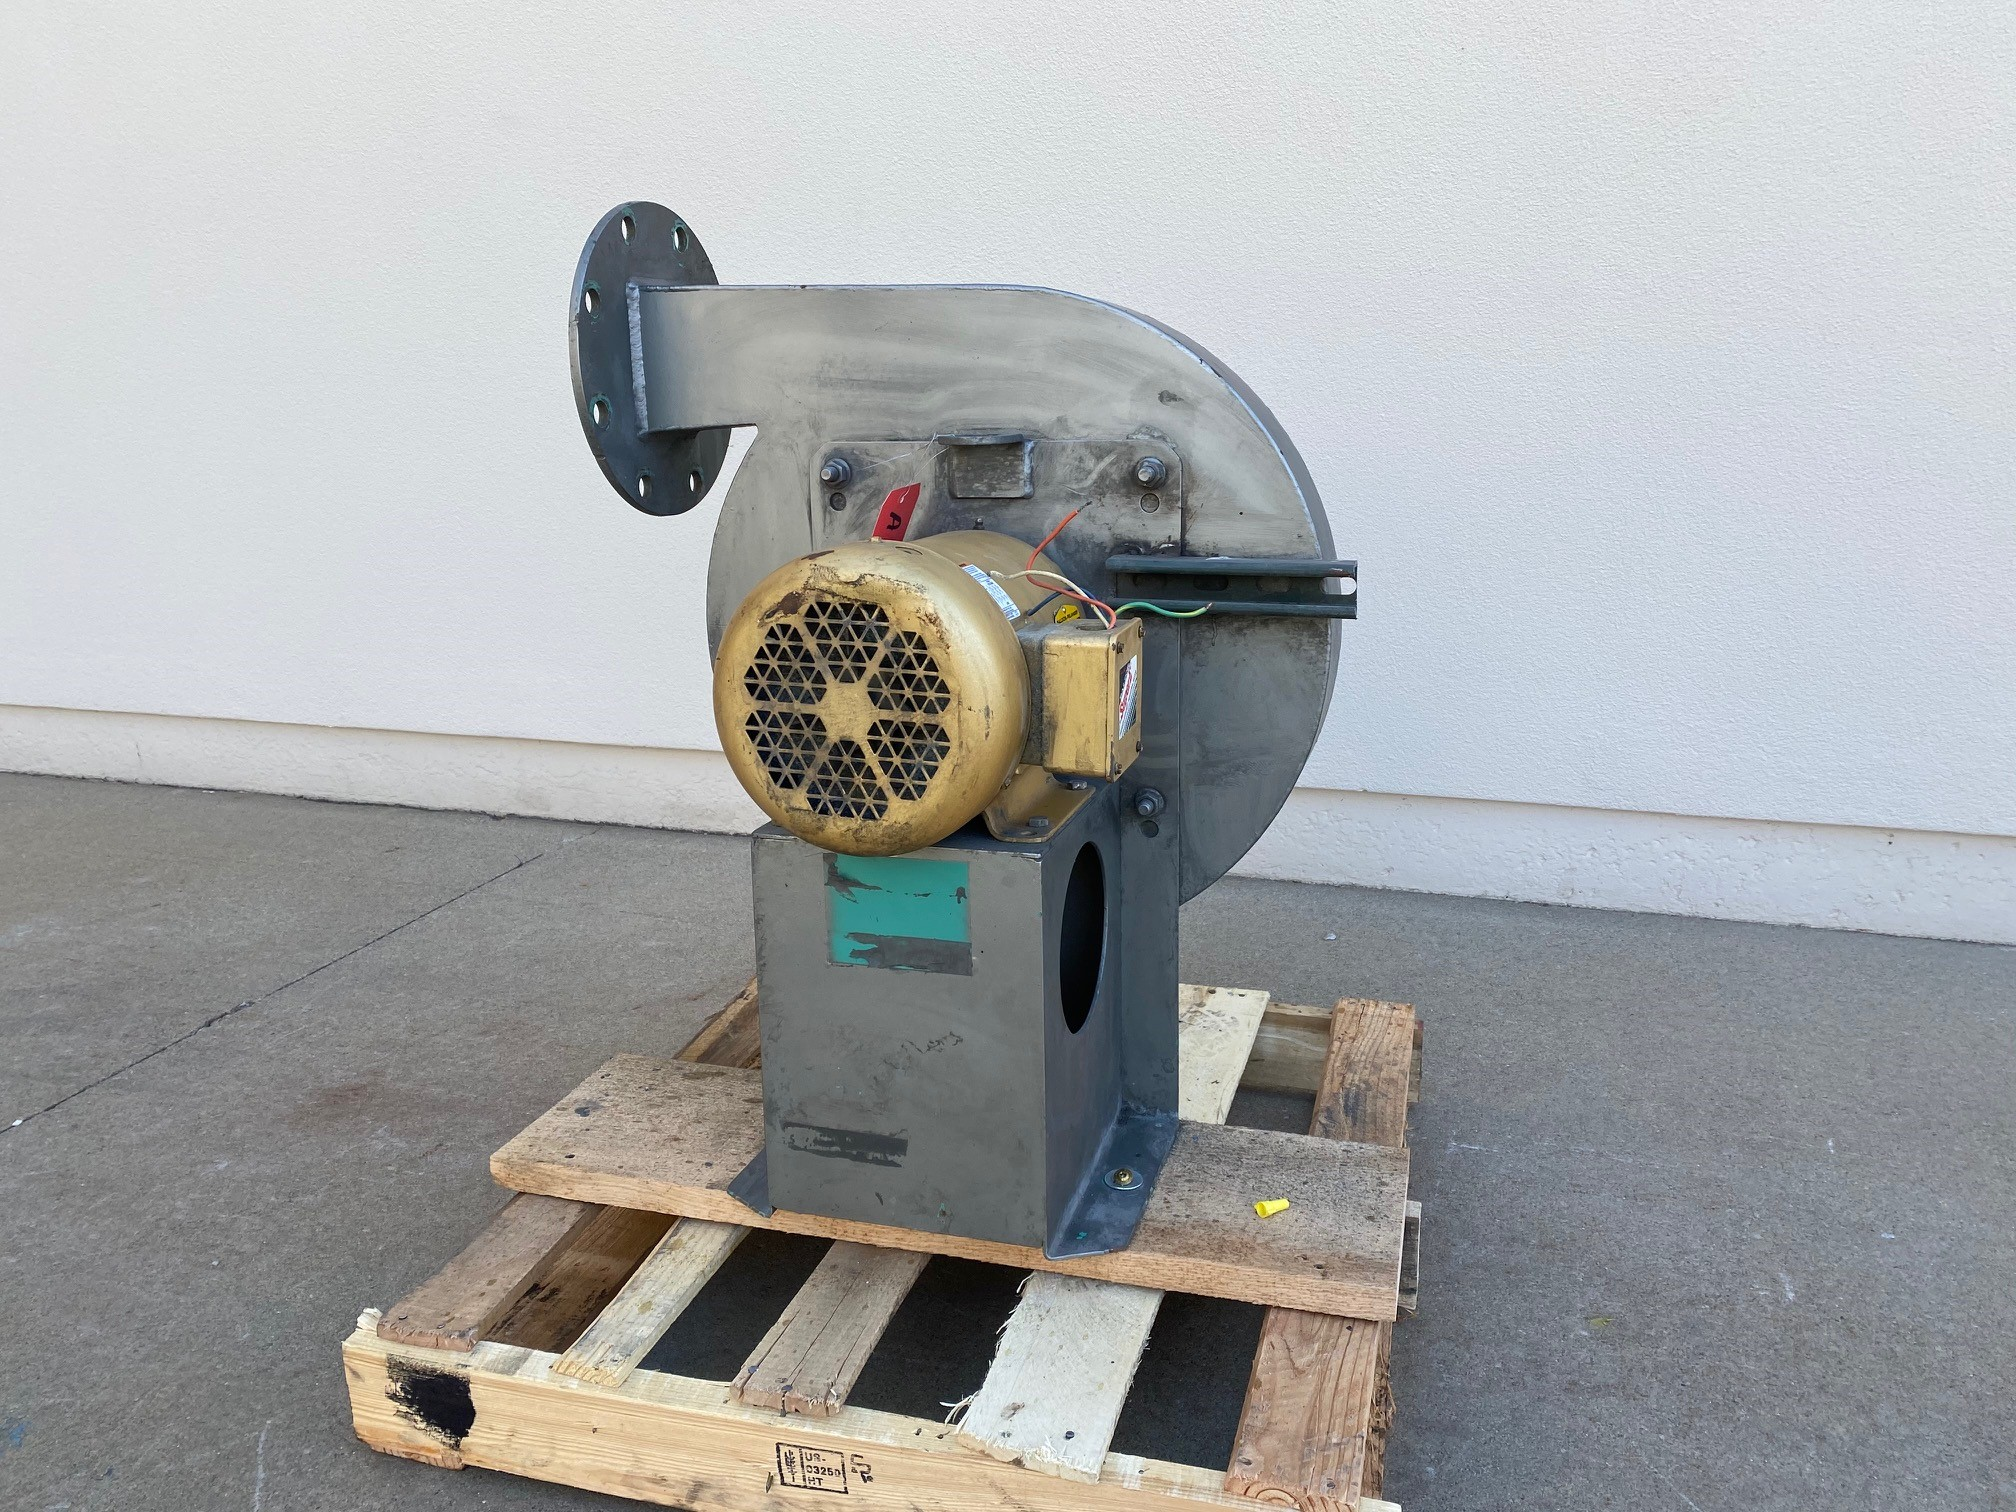 Used Air Knife Blower - New York Blower Style 3 HP Air Knife Blower AK2043-Blowers -Air Knife/Circulation